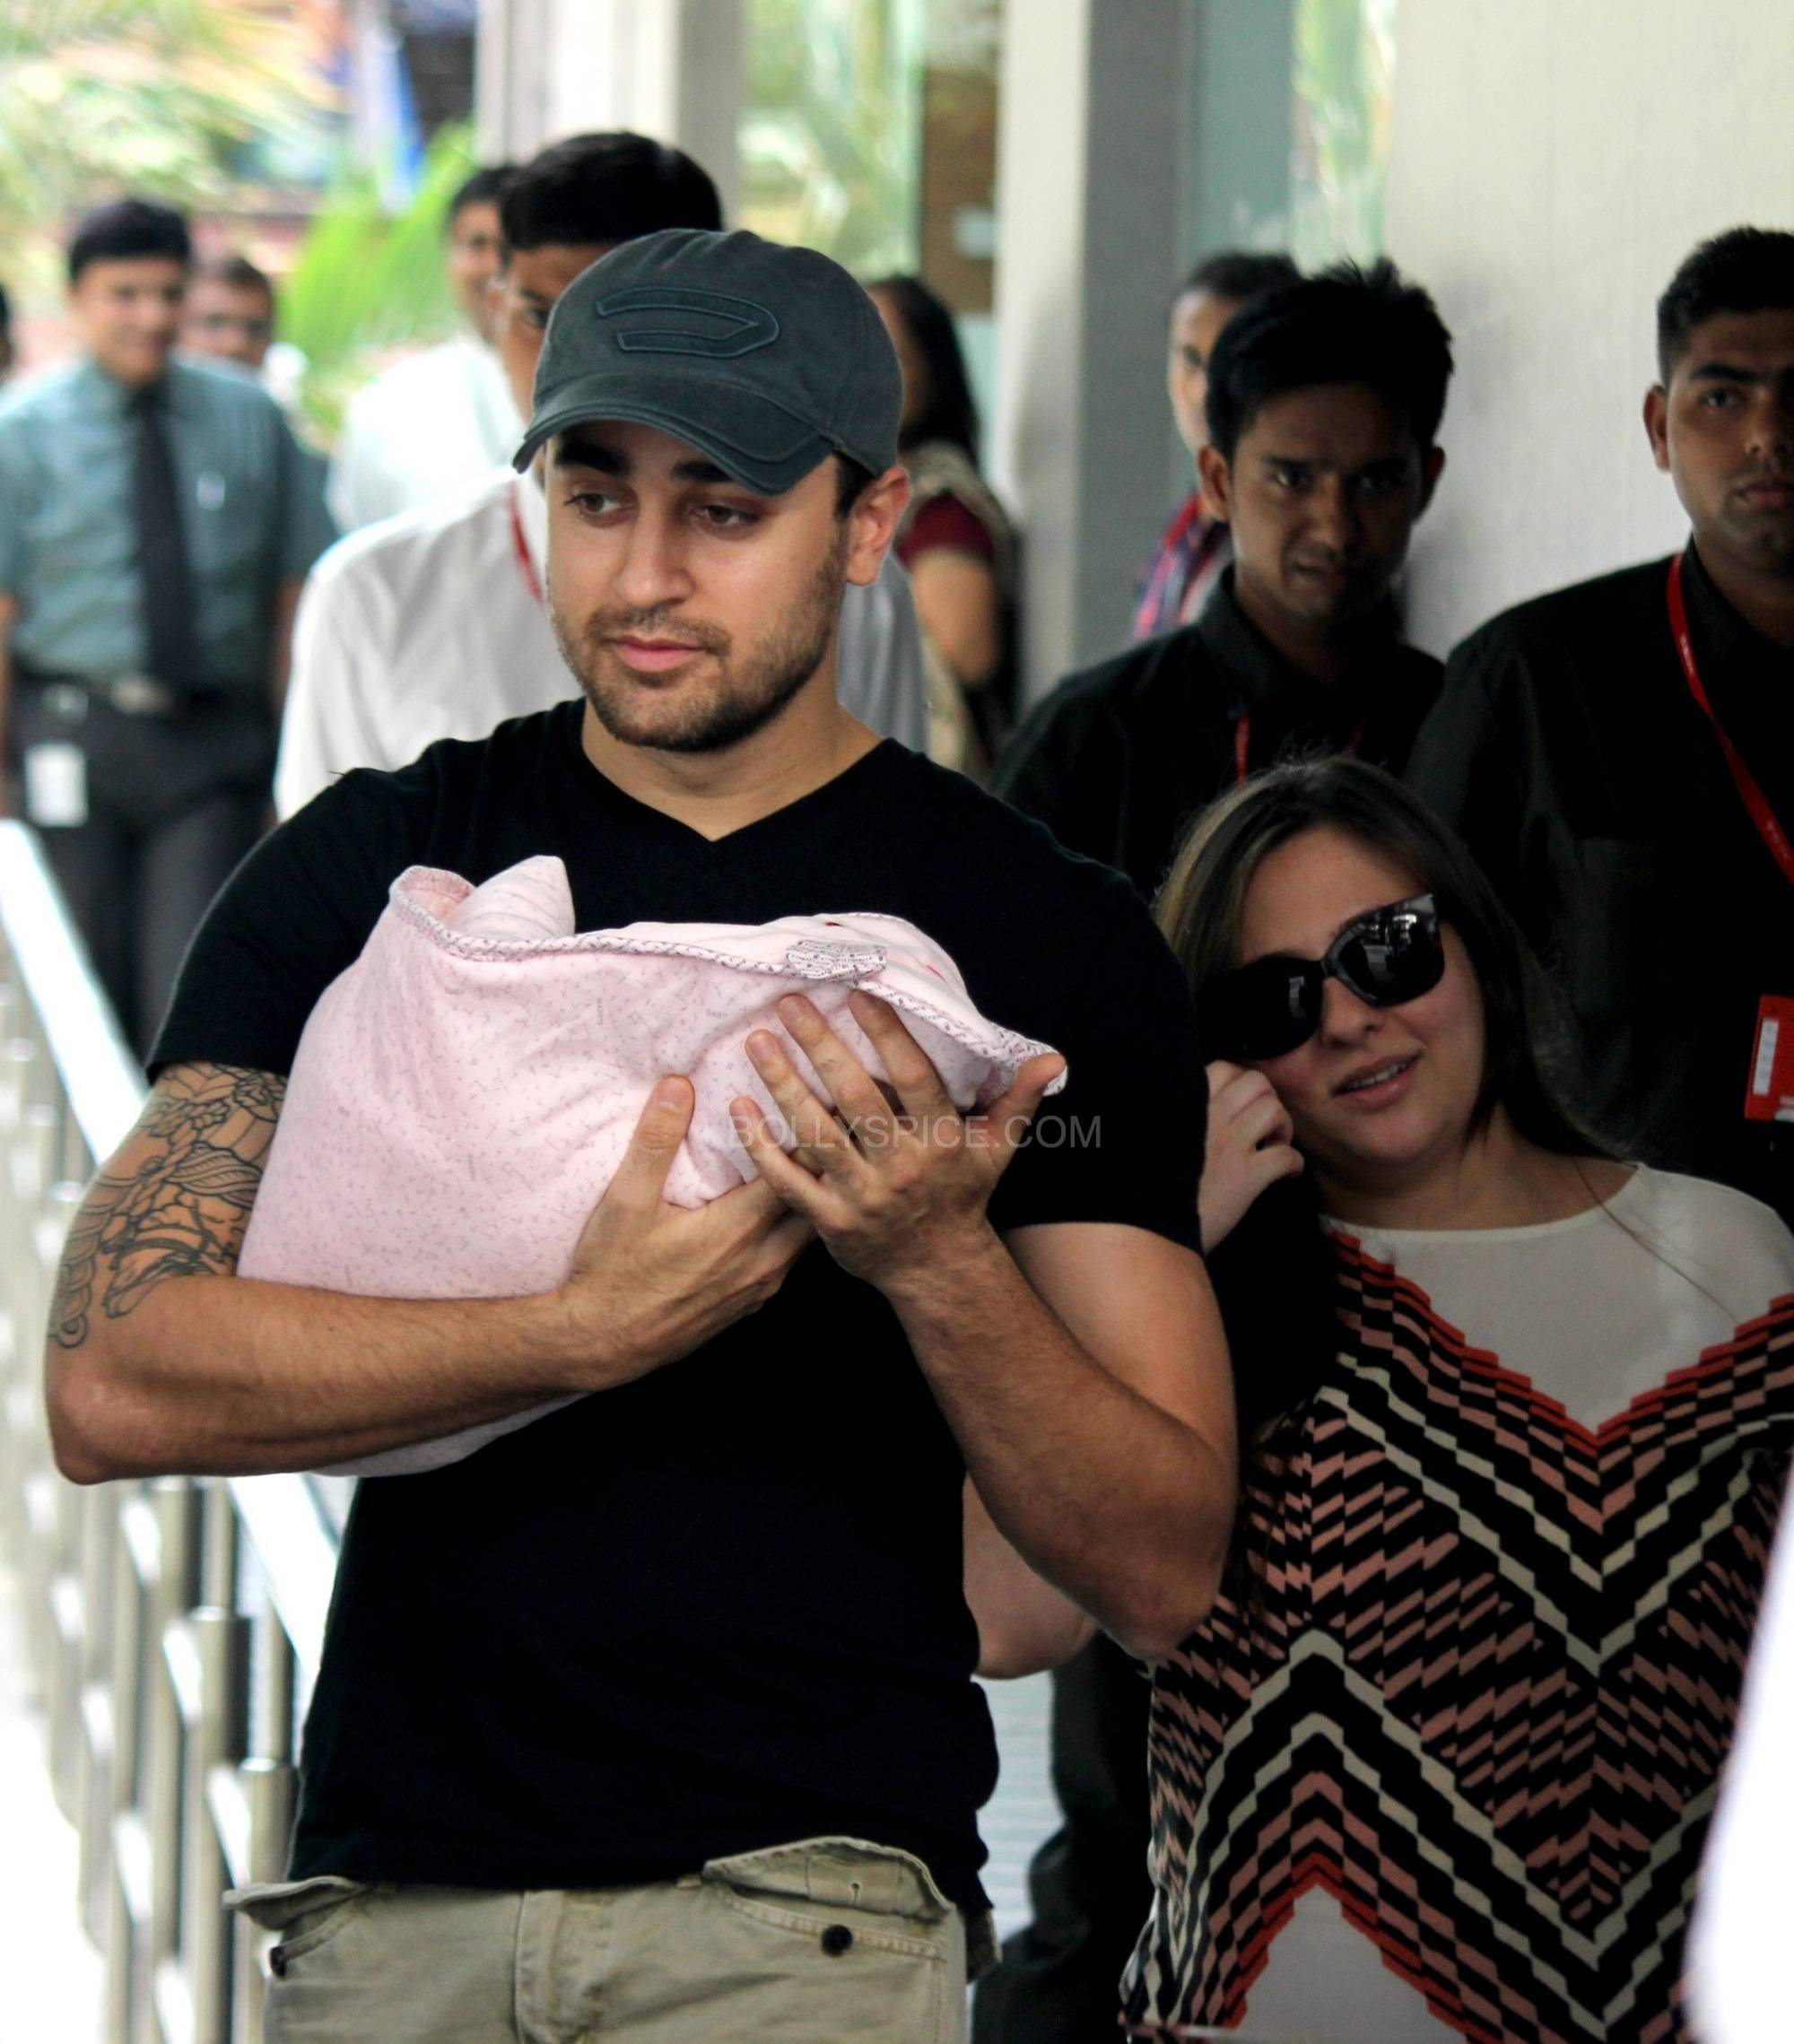 imranavantikaandimara2 Imran Khan and Avantika name their daughter Imara